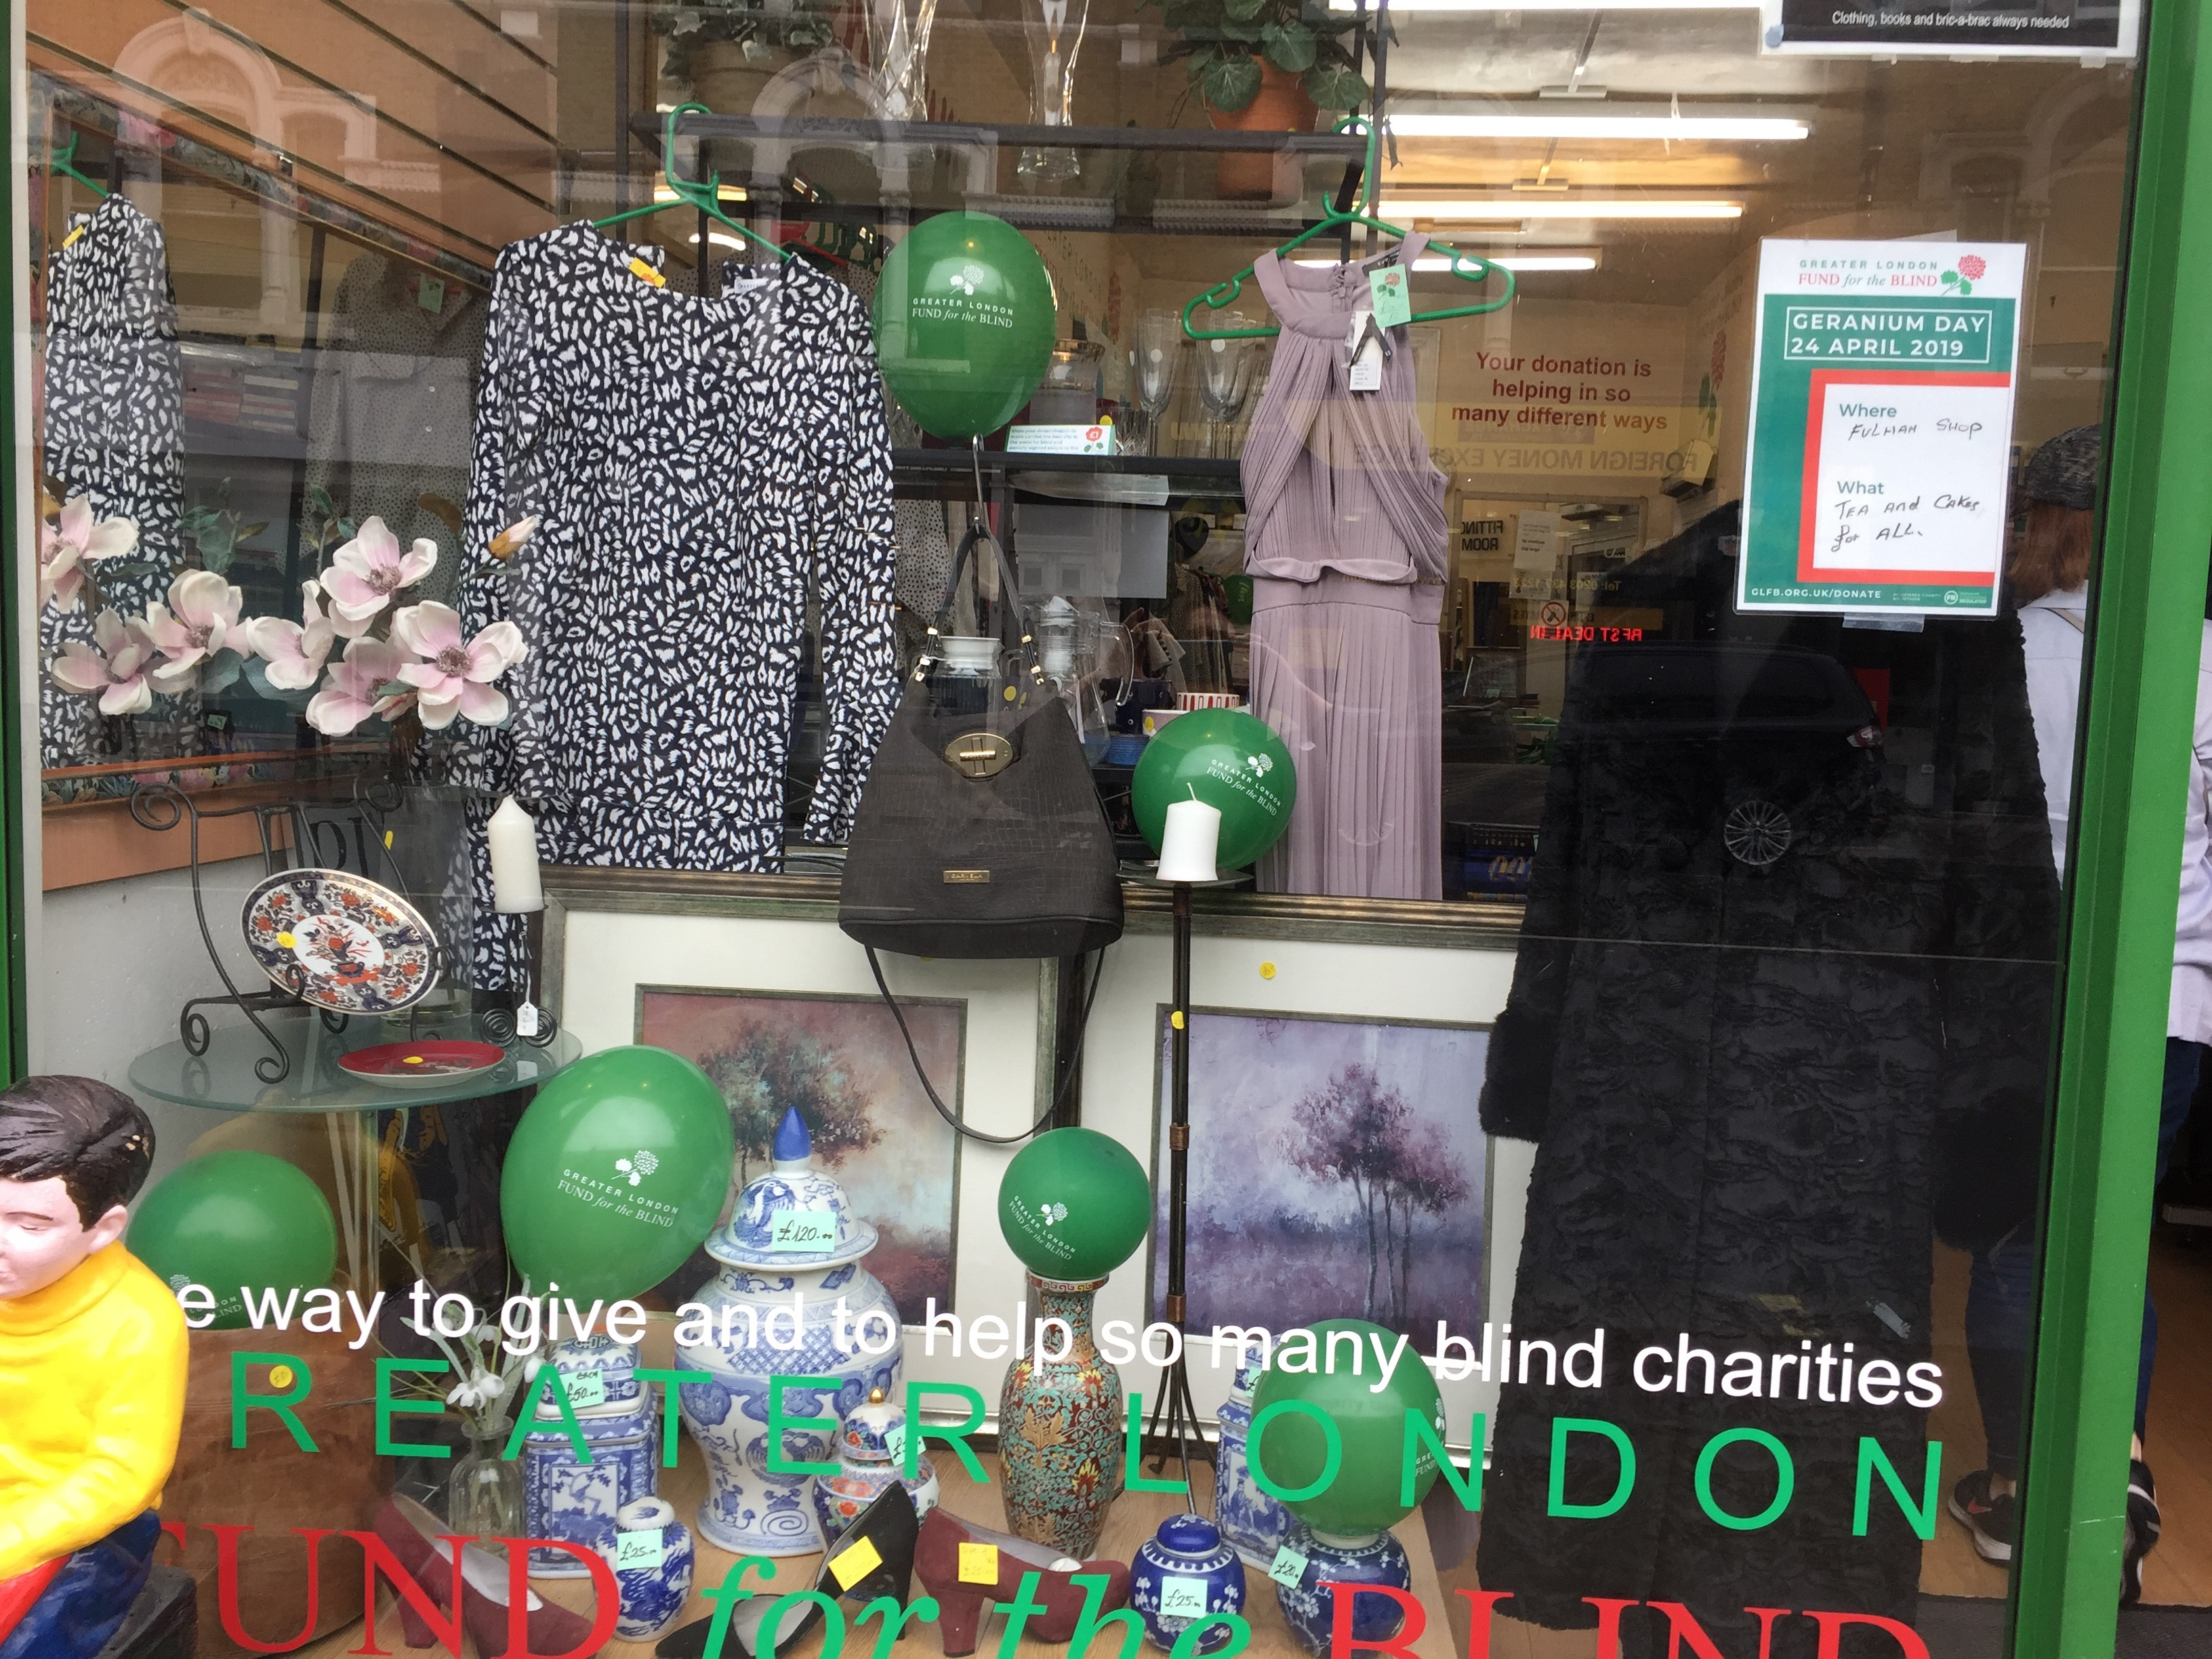 Greater London Fund for the Blind Geranium Shop front with balloons and fundraising posters